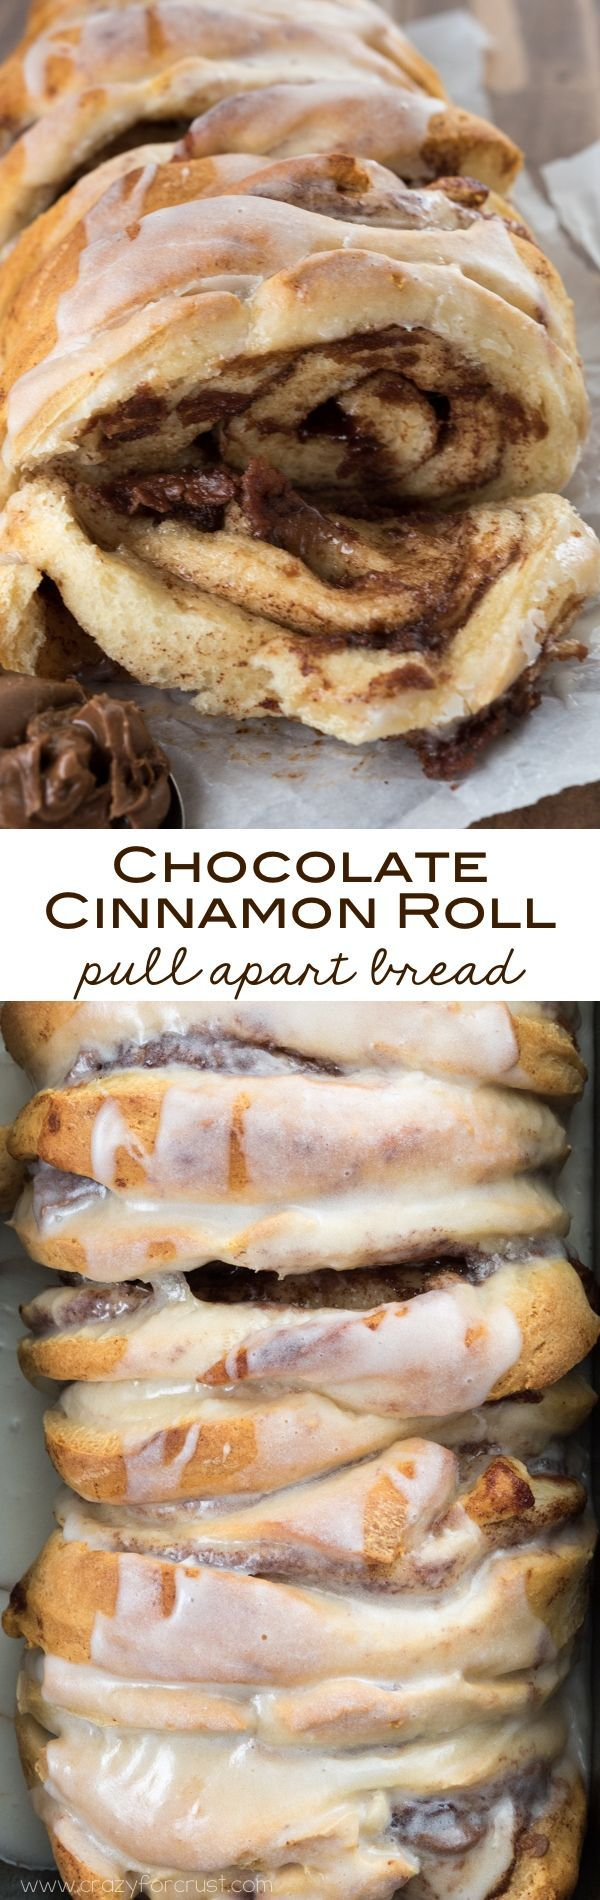 Chocolate Cinnamon Roll Pull Apart Bread with only 2 ingredients! An easy breakfast recipe on the table in